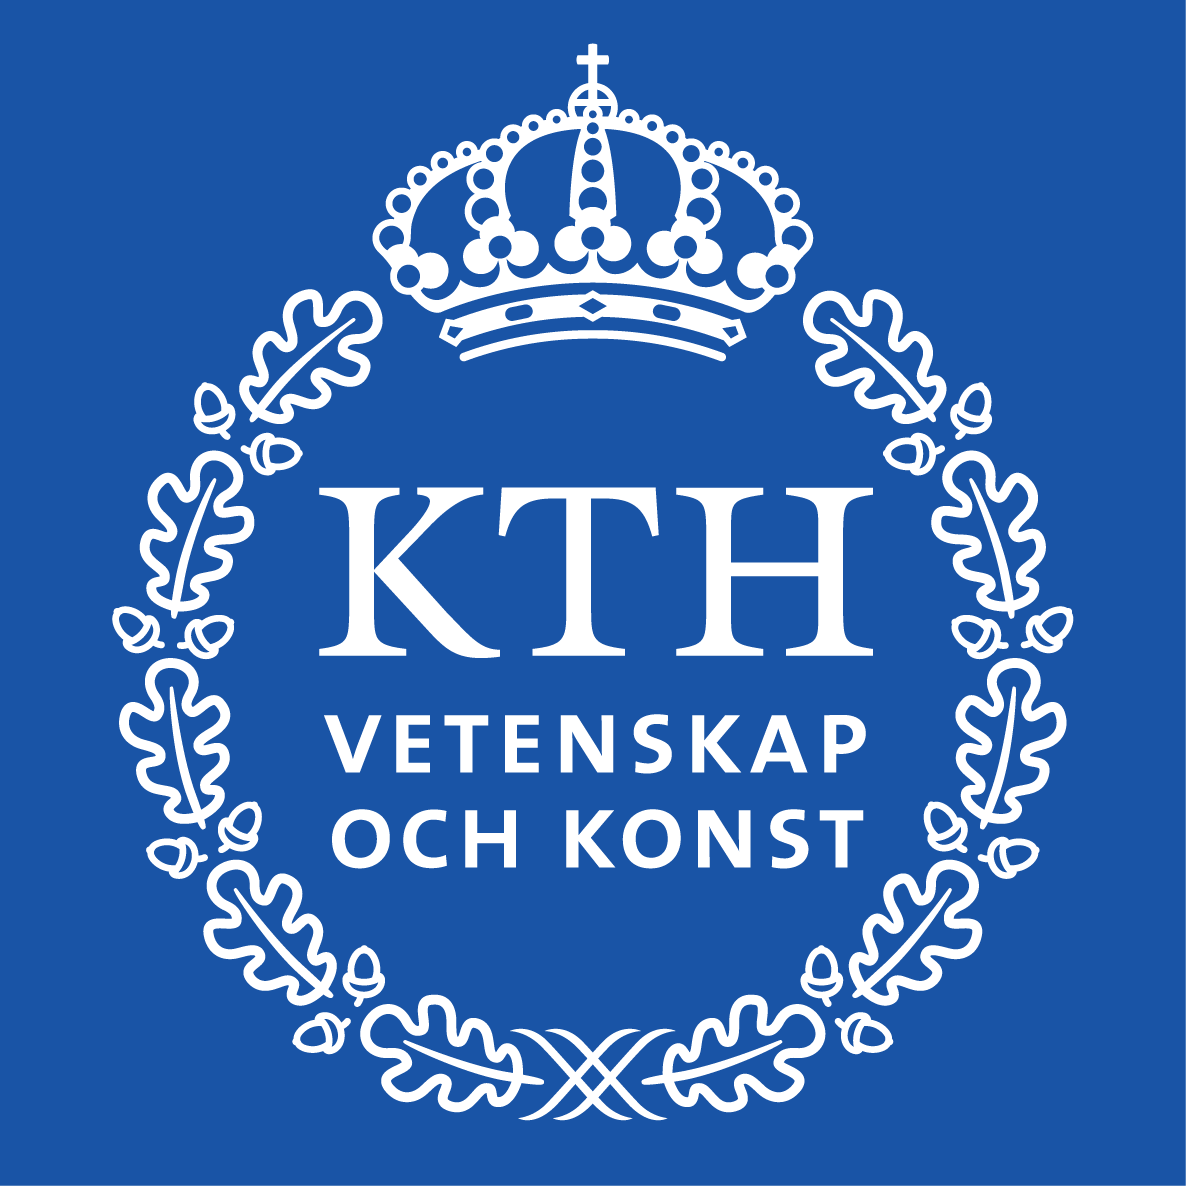 Swedish Royal Institute of Technology's division of Energy Systems (KTH)